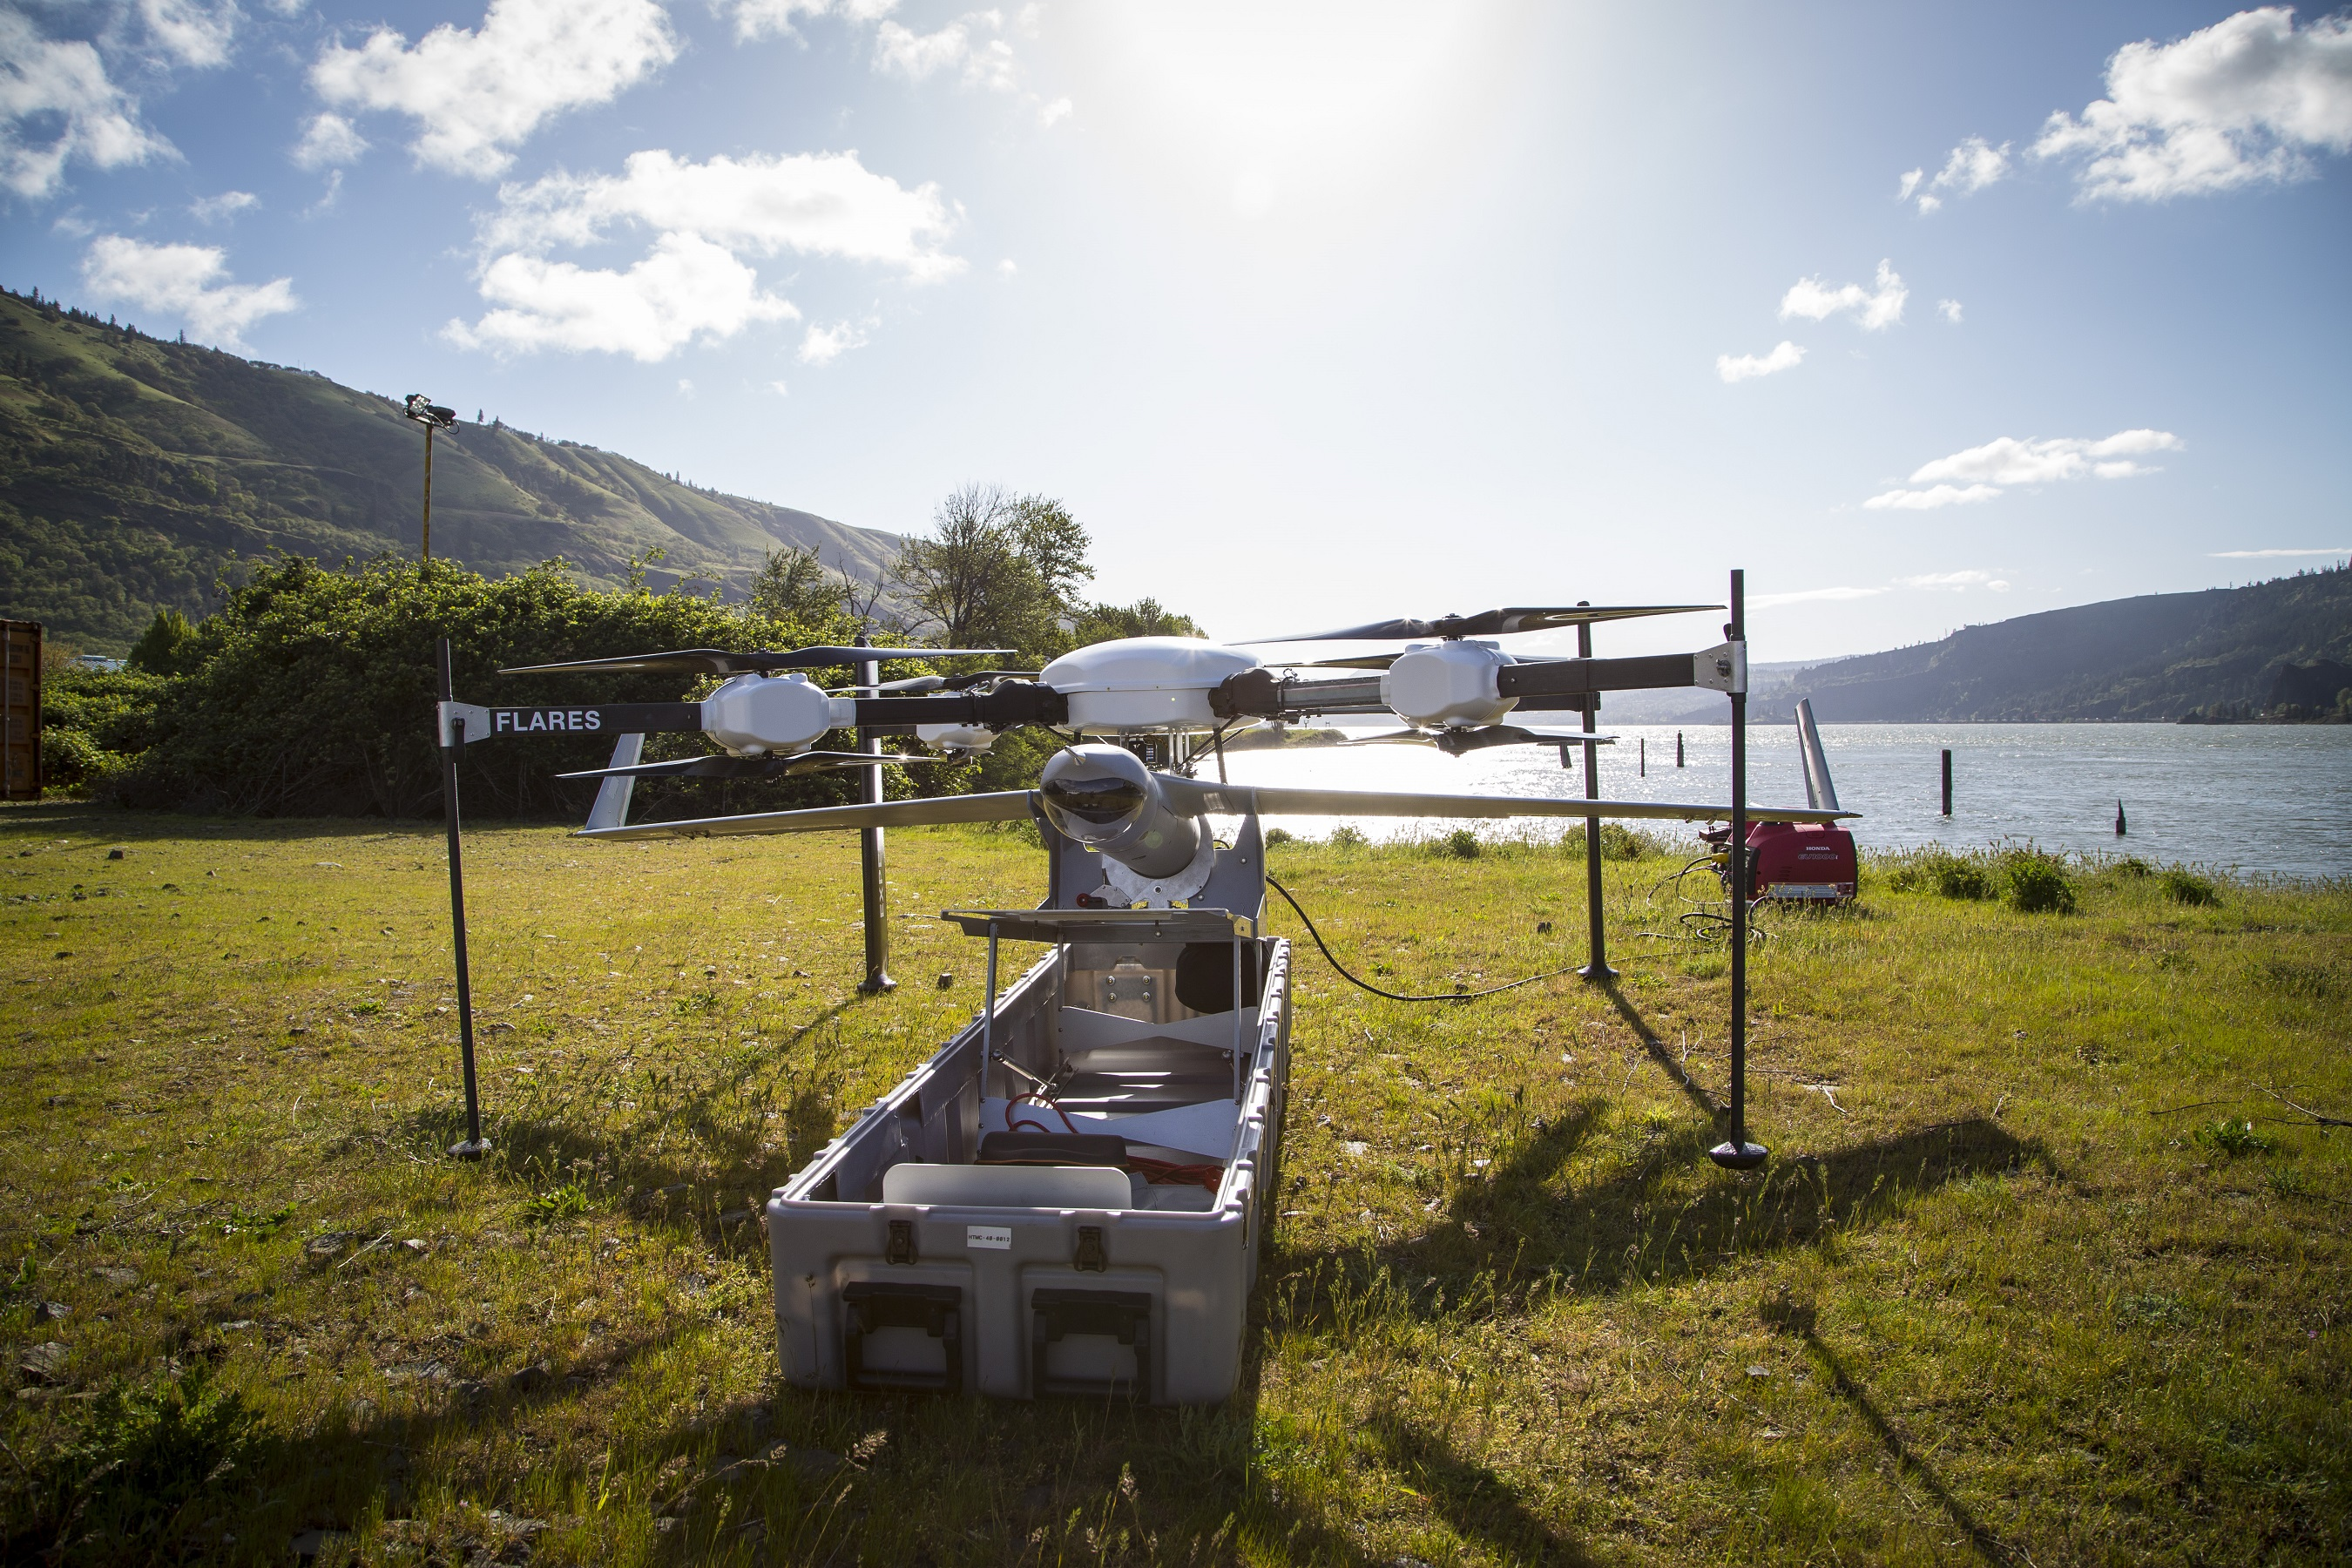 Insitu's new Flying Launch and Recovery System (FLARES) launches ScanEagle from the air and captures the vehicle without ground equipment. Insitu photo.